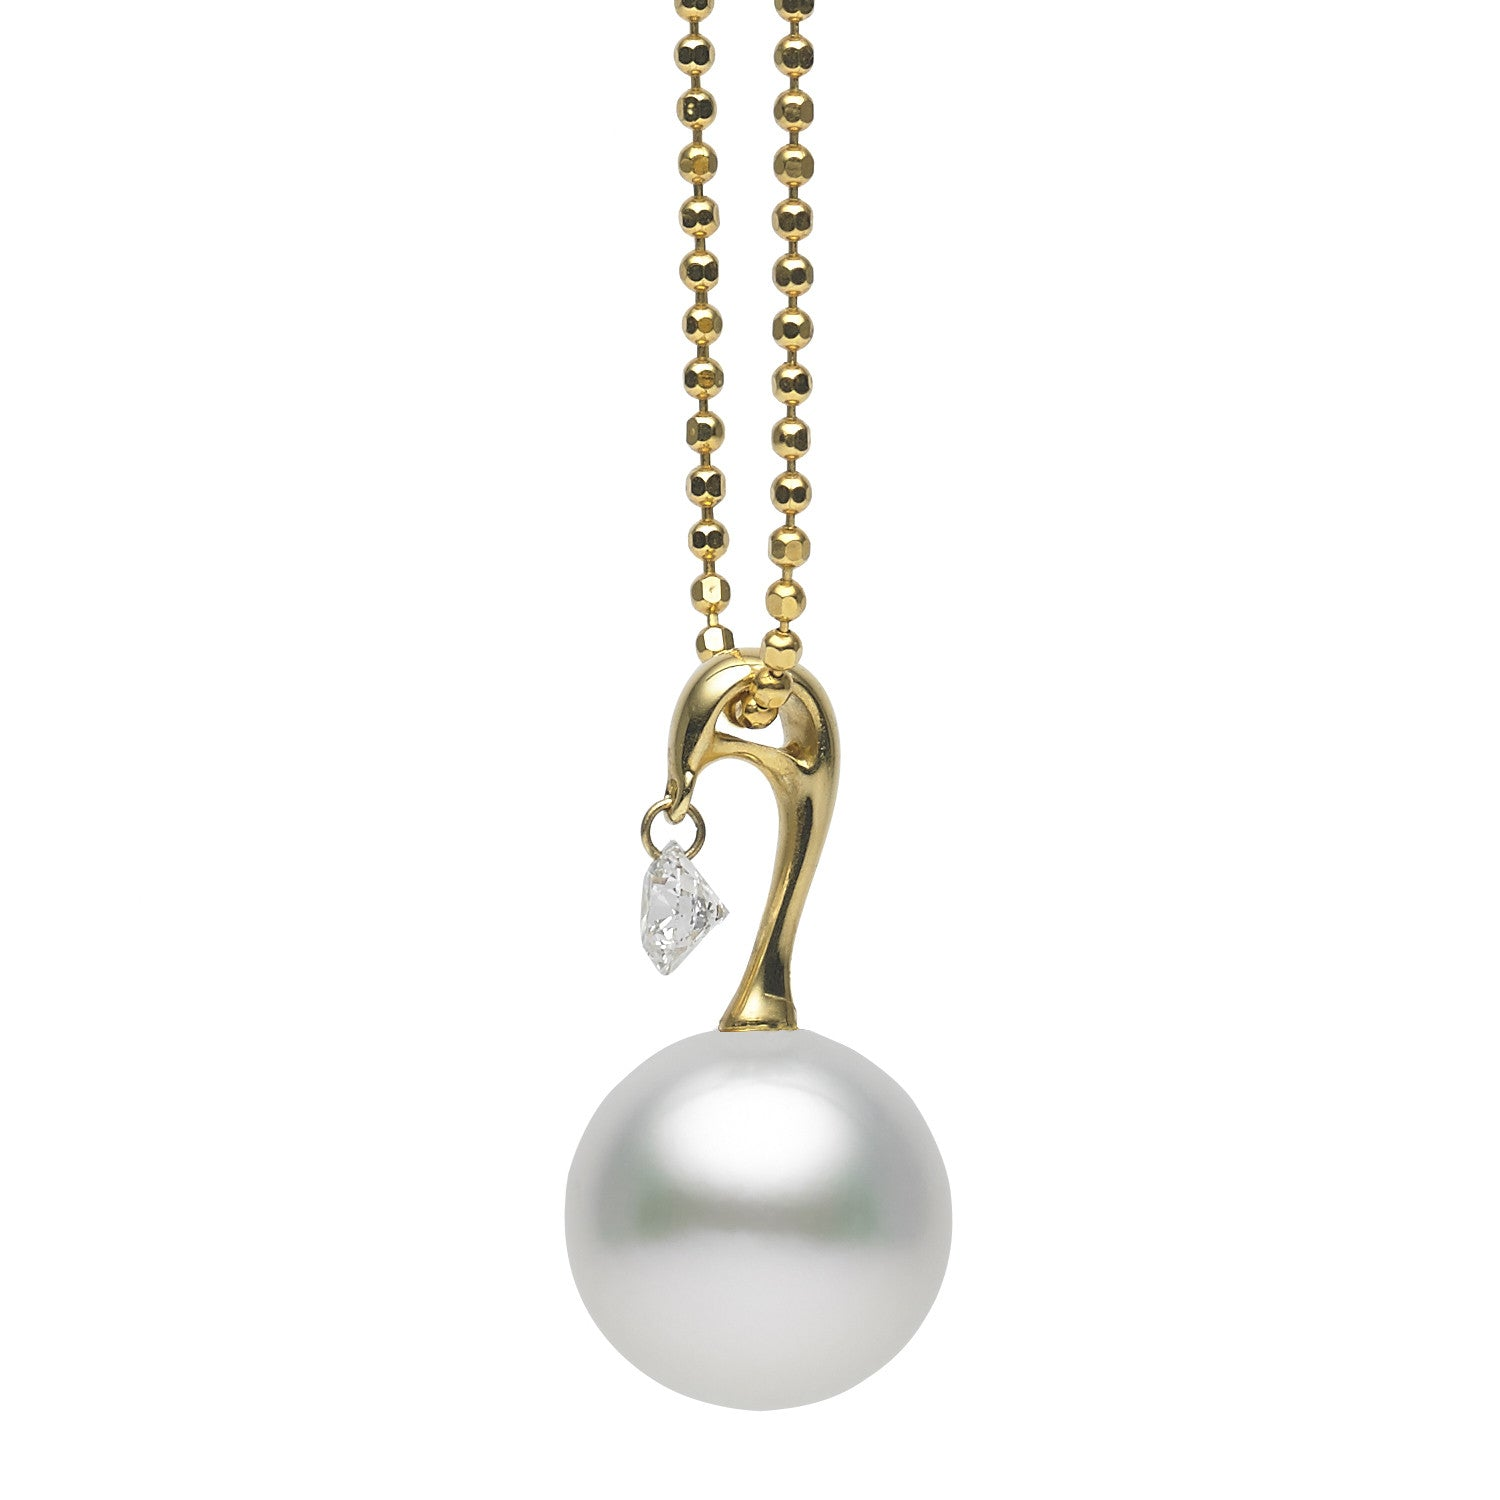 Dancing Diamond™ Collection 10-11mm White South Sea Pearl and Diamond Pendant Necklace